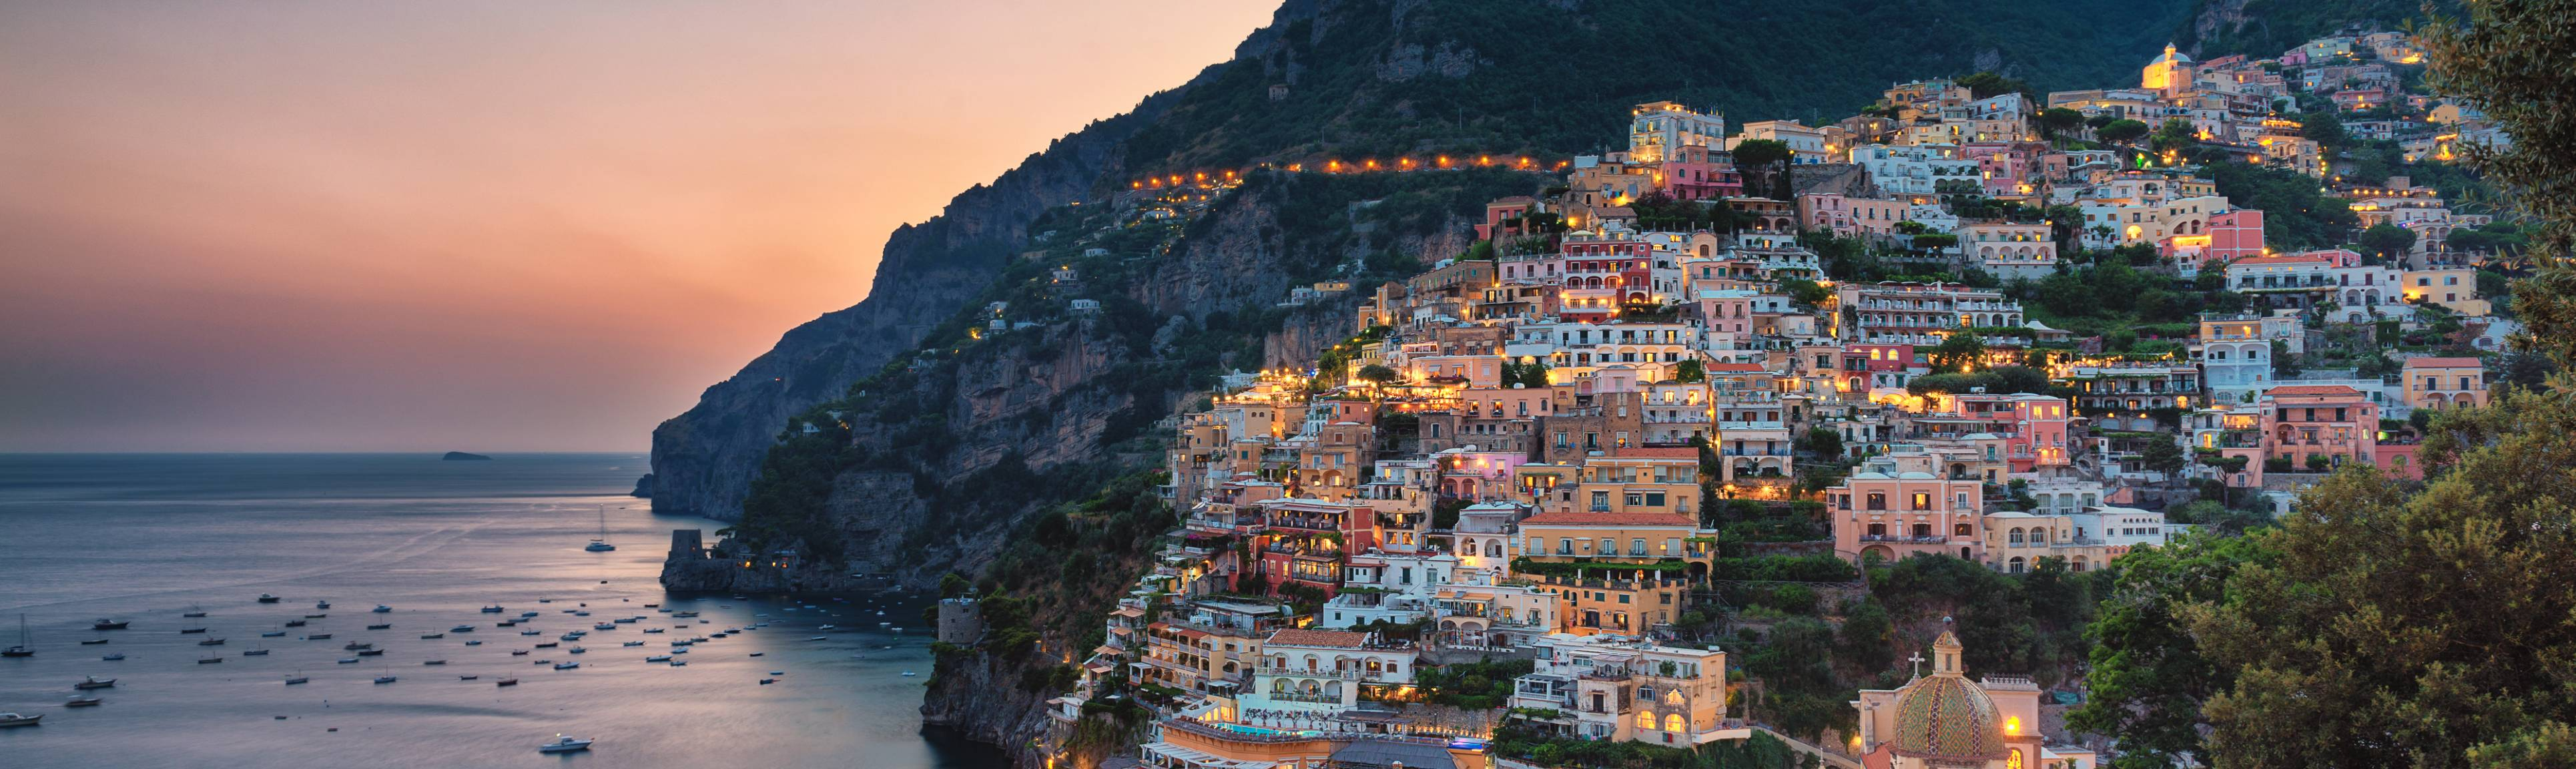 View of Positano nestled against the mountains at sunset, Amalfi Coast